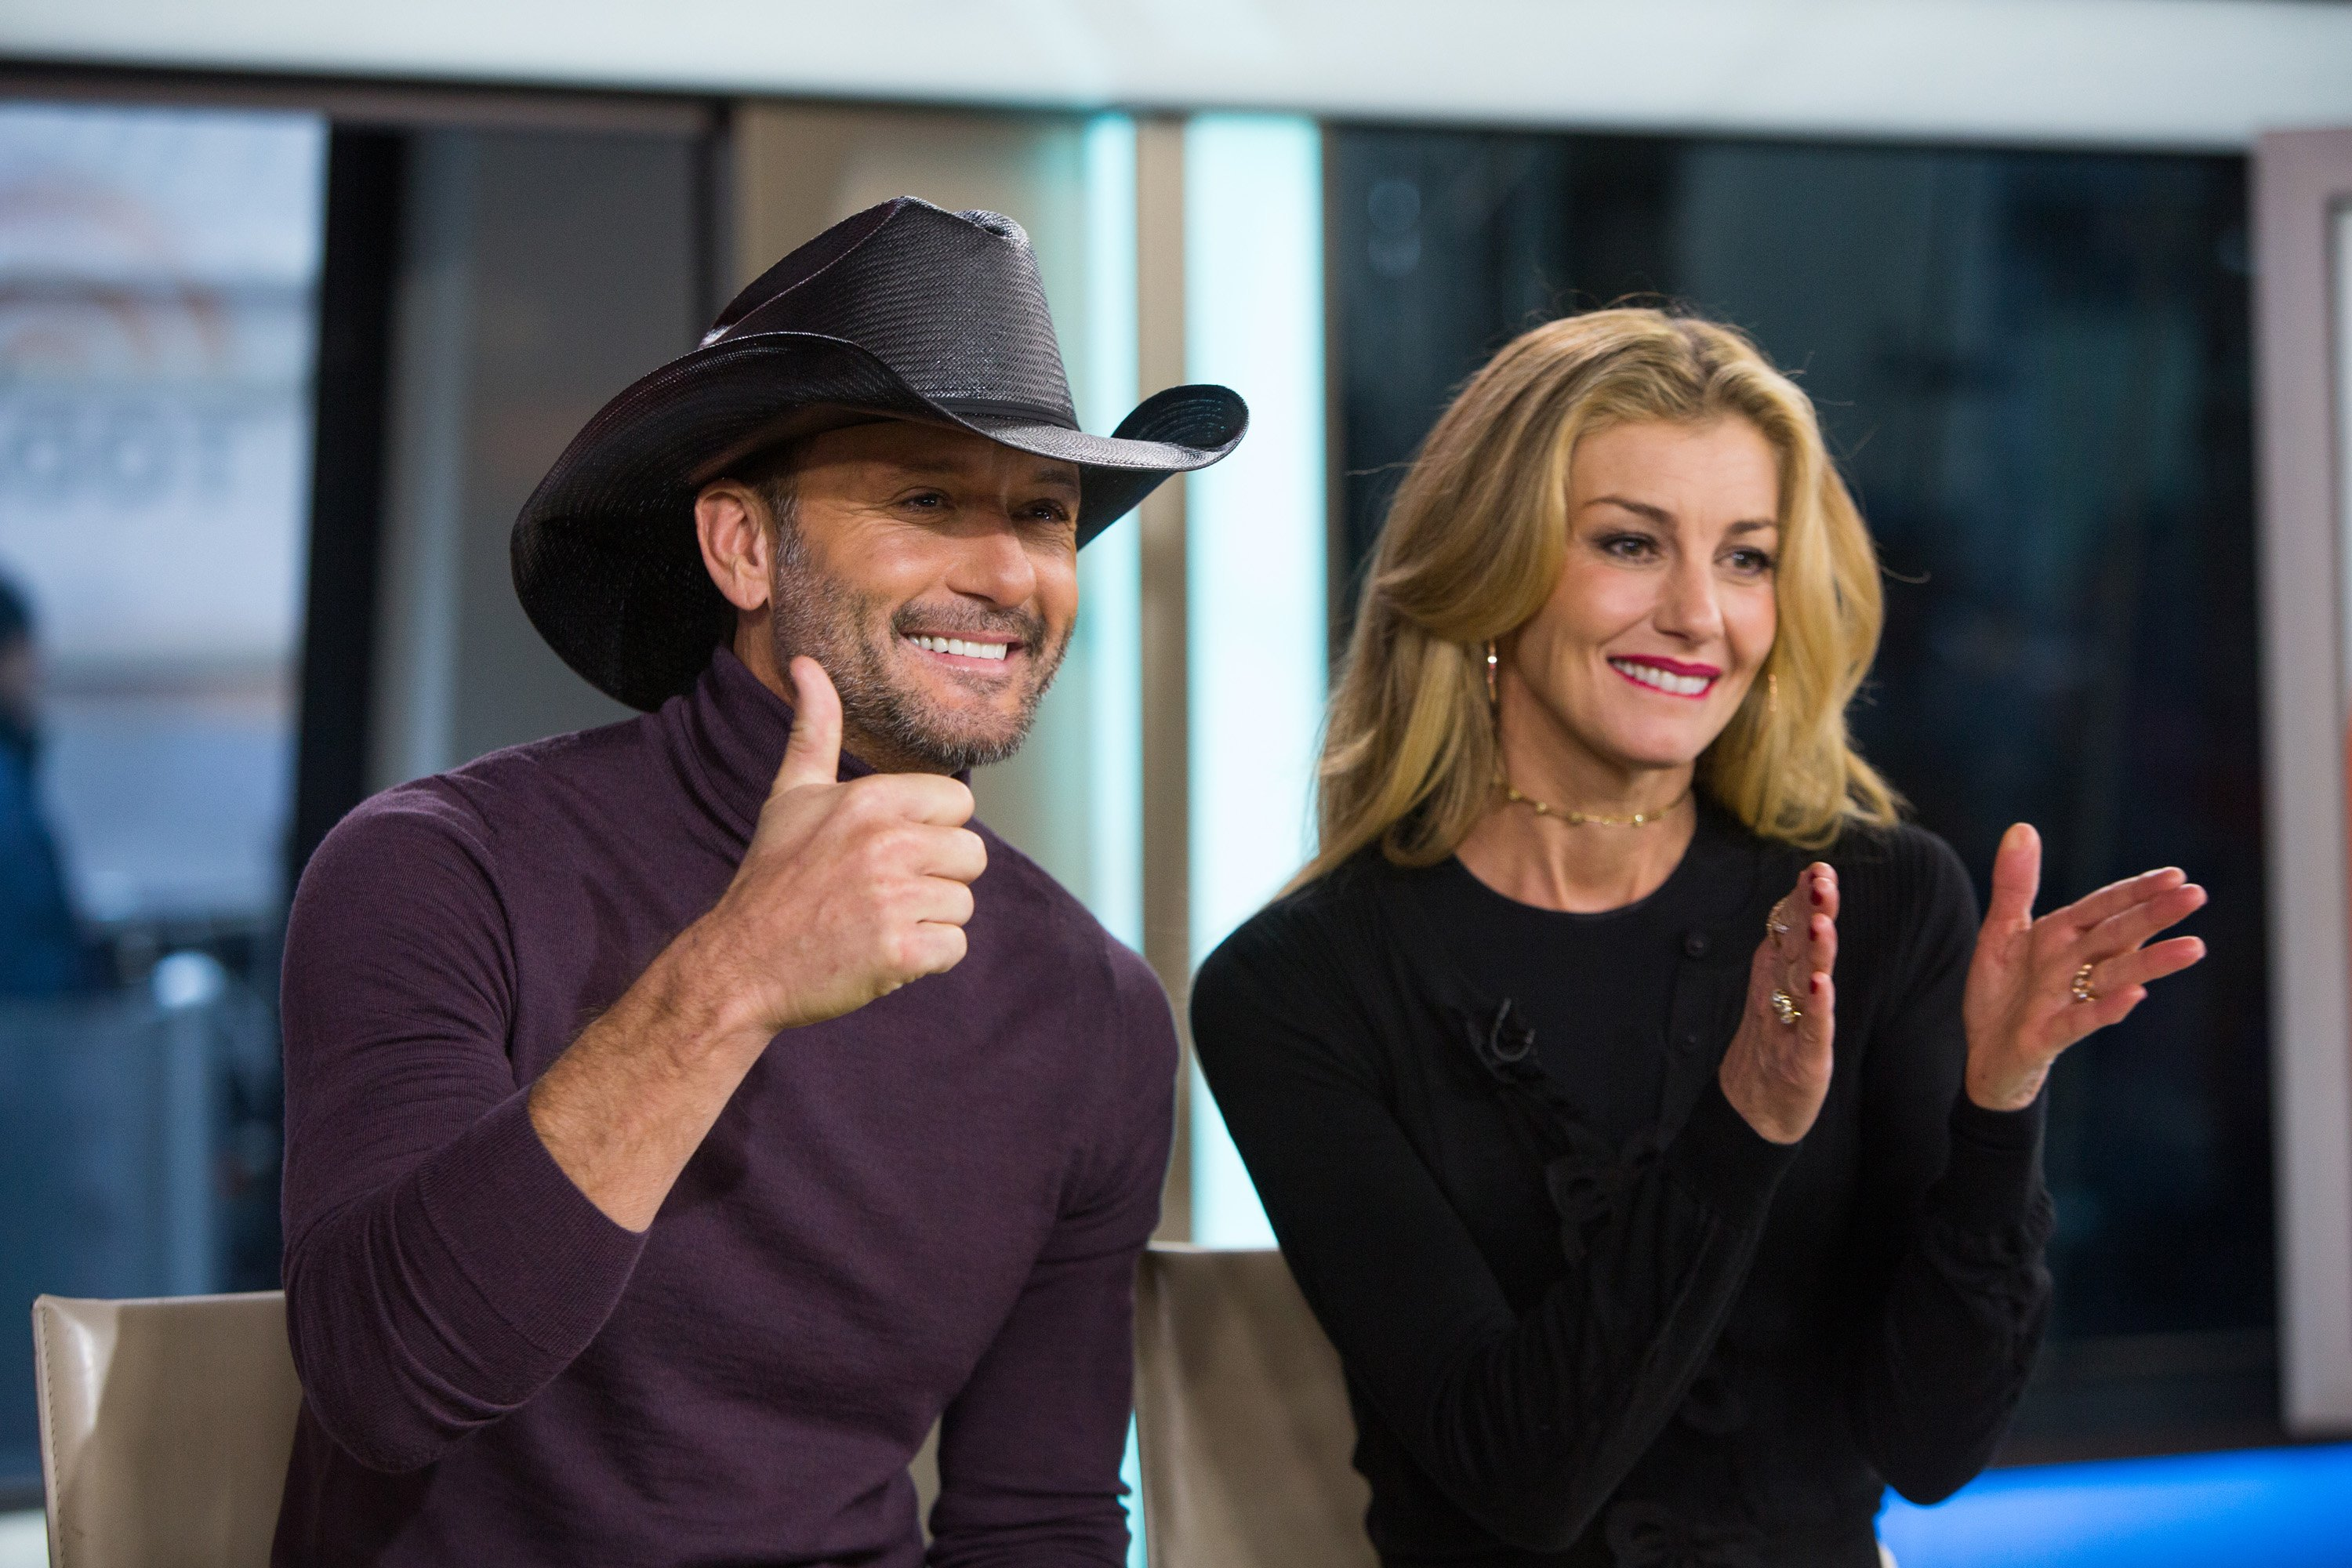 Tim McGraw and Faith Hill pictured on Friday, November 17, 2017.  Source: Getty Images.